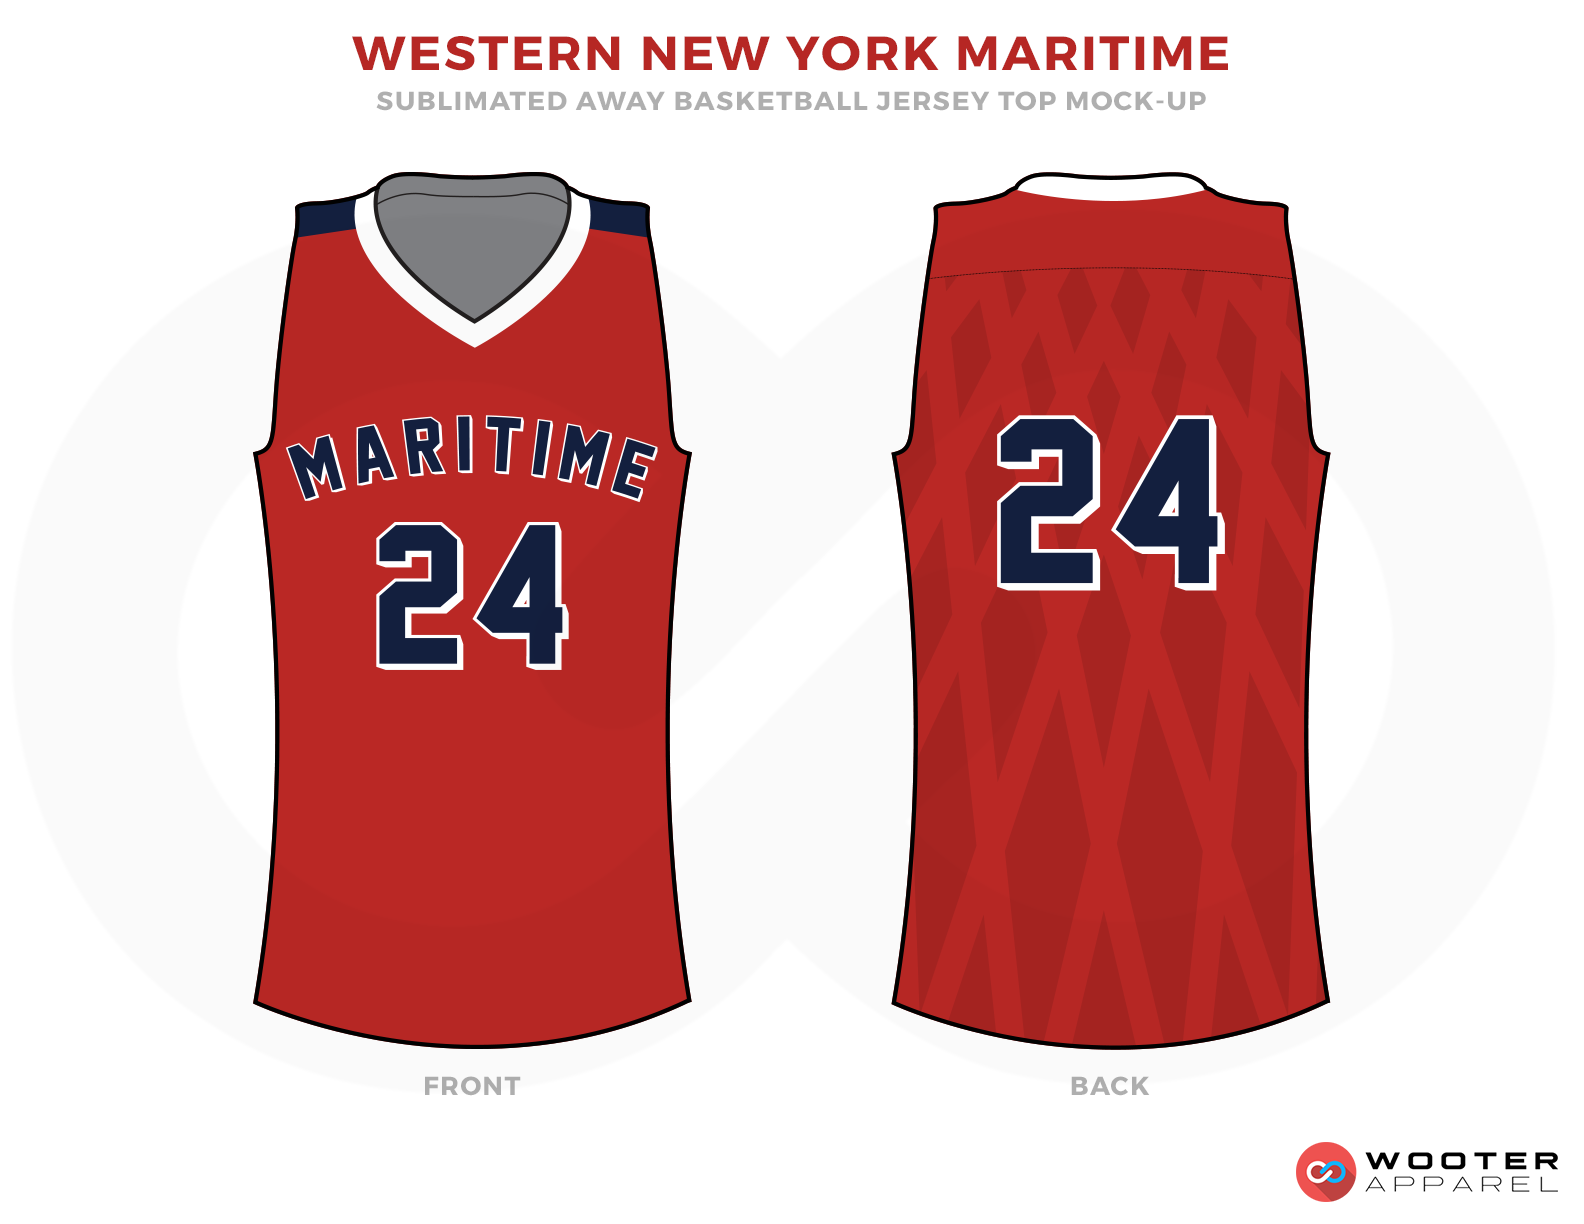 WESTERN NEW YORK MARITIME Red White and Blue Basketball Uniforms, Jersey